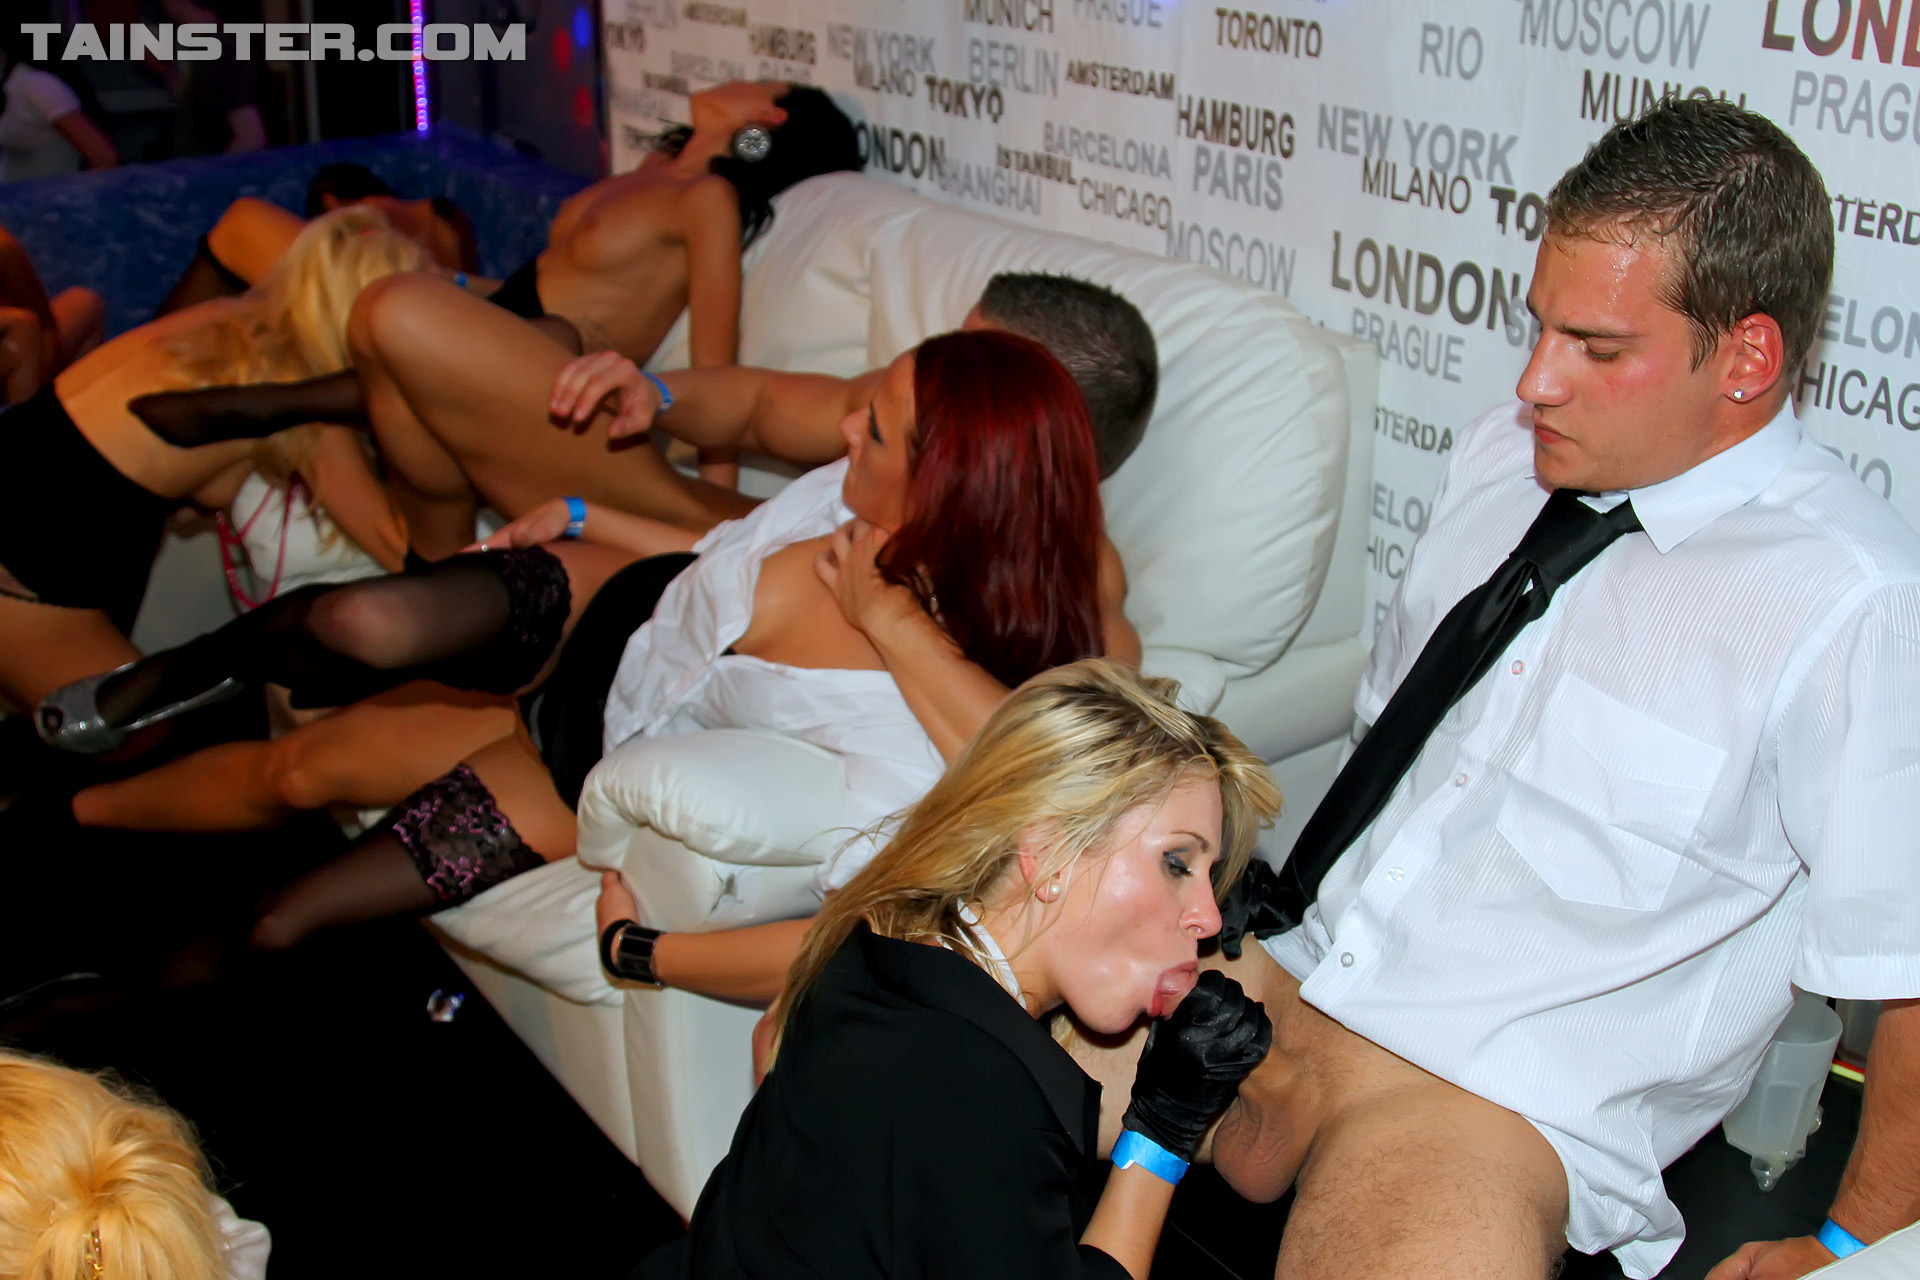 Not Drunk sex orgy from prague with